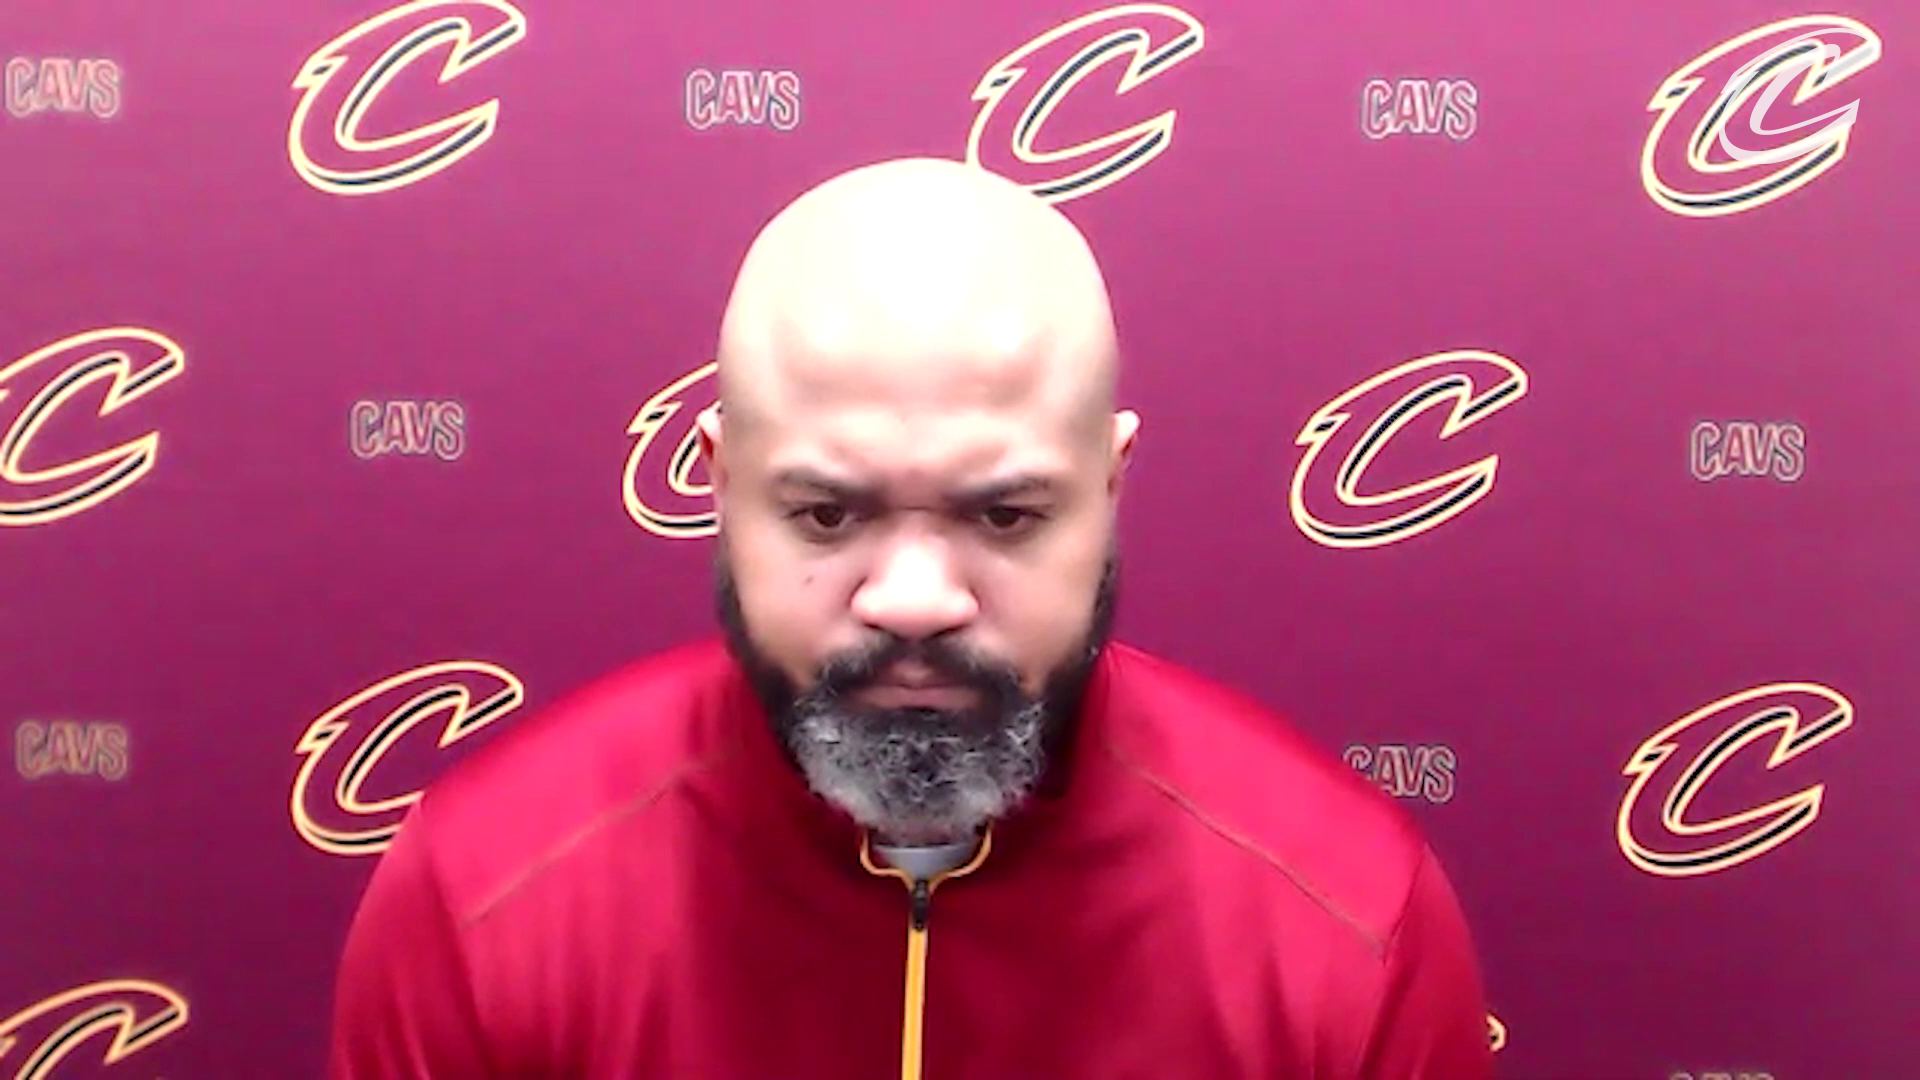 Cavs at Hornets Postgame: Coach Bickerstaff